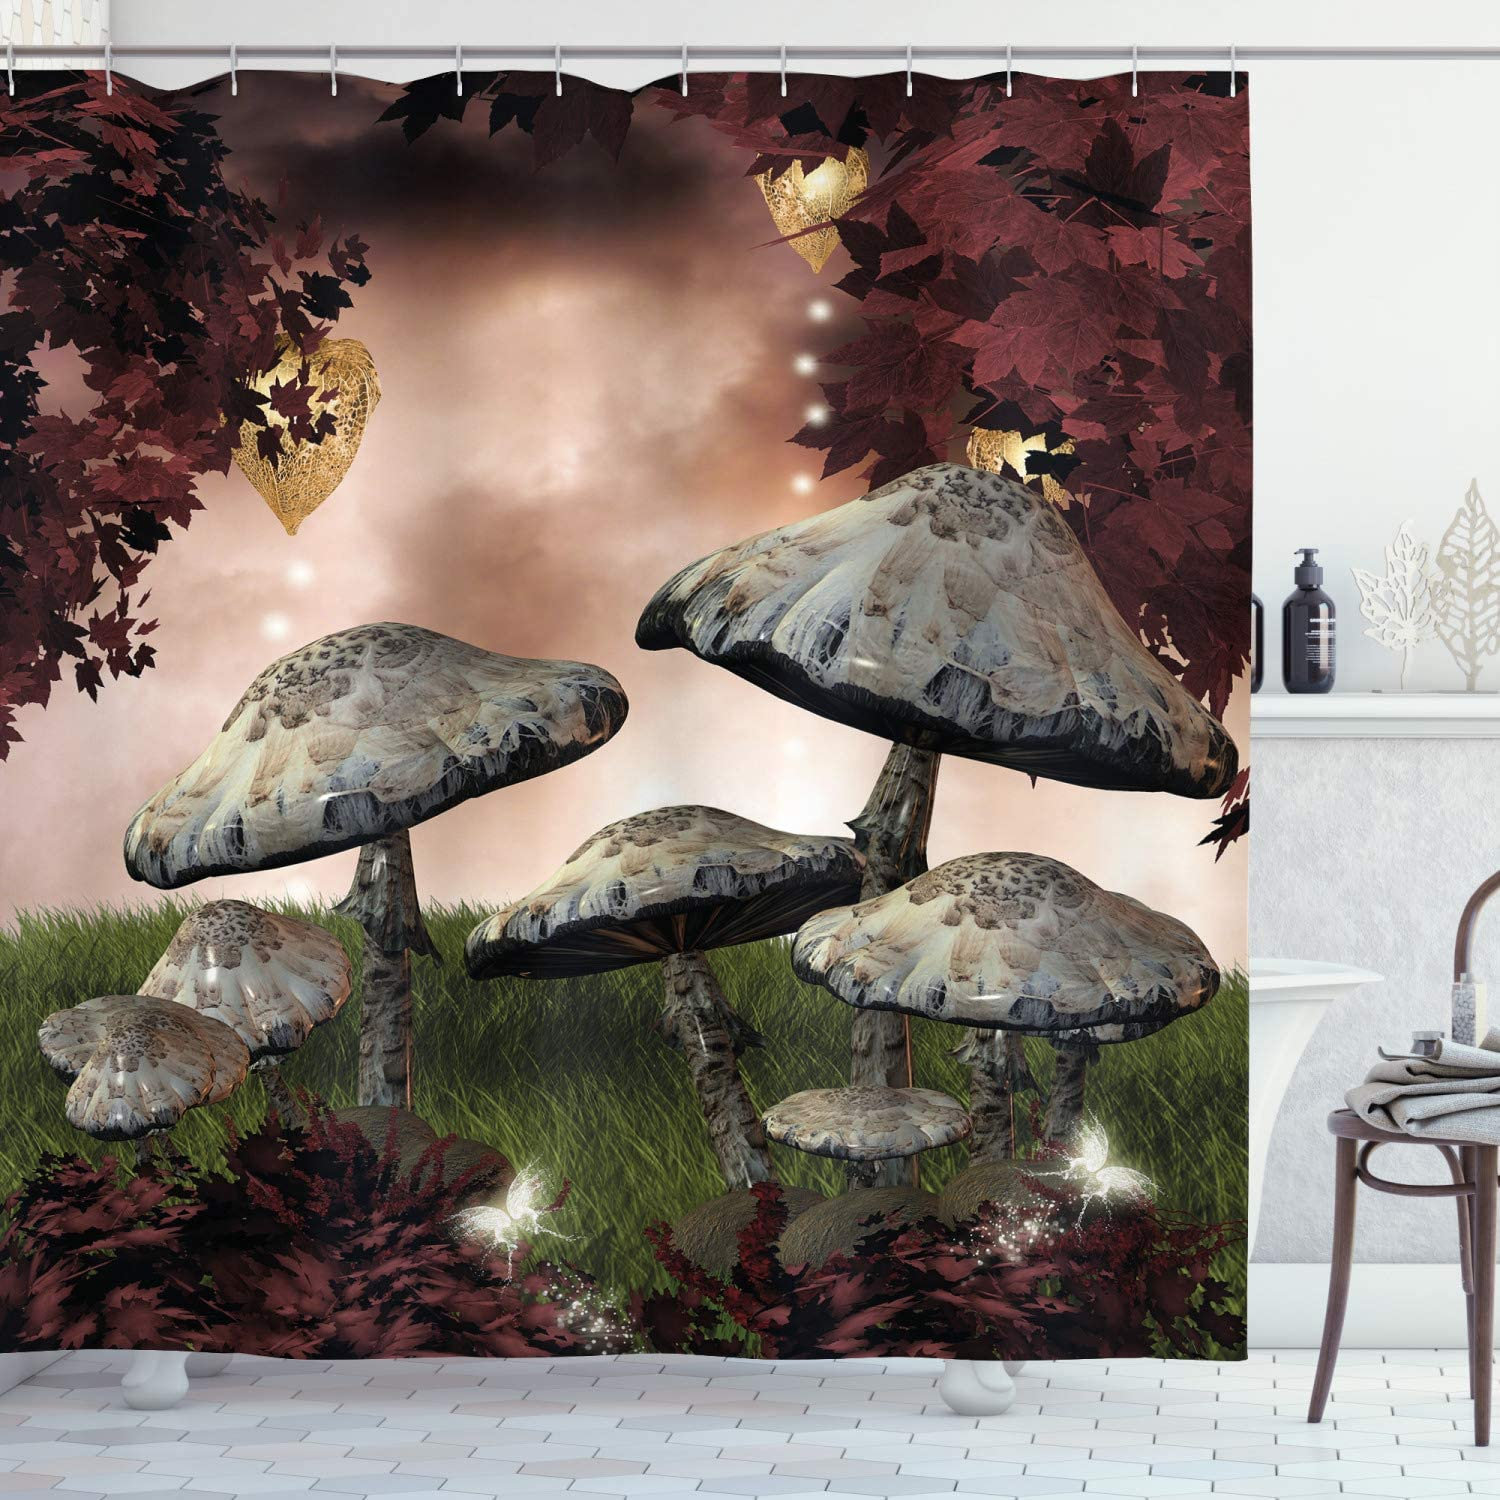 """Ambesonne Fantasy Shower Curtain, Enchanted Fairytale Forest Scenery with Mushrooms and Fairies Dark Image, Cloth Fabric Bathroom Decor Set with Hooks, 70"""" Long, Maroon Grey"""